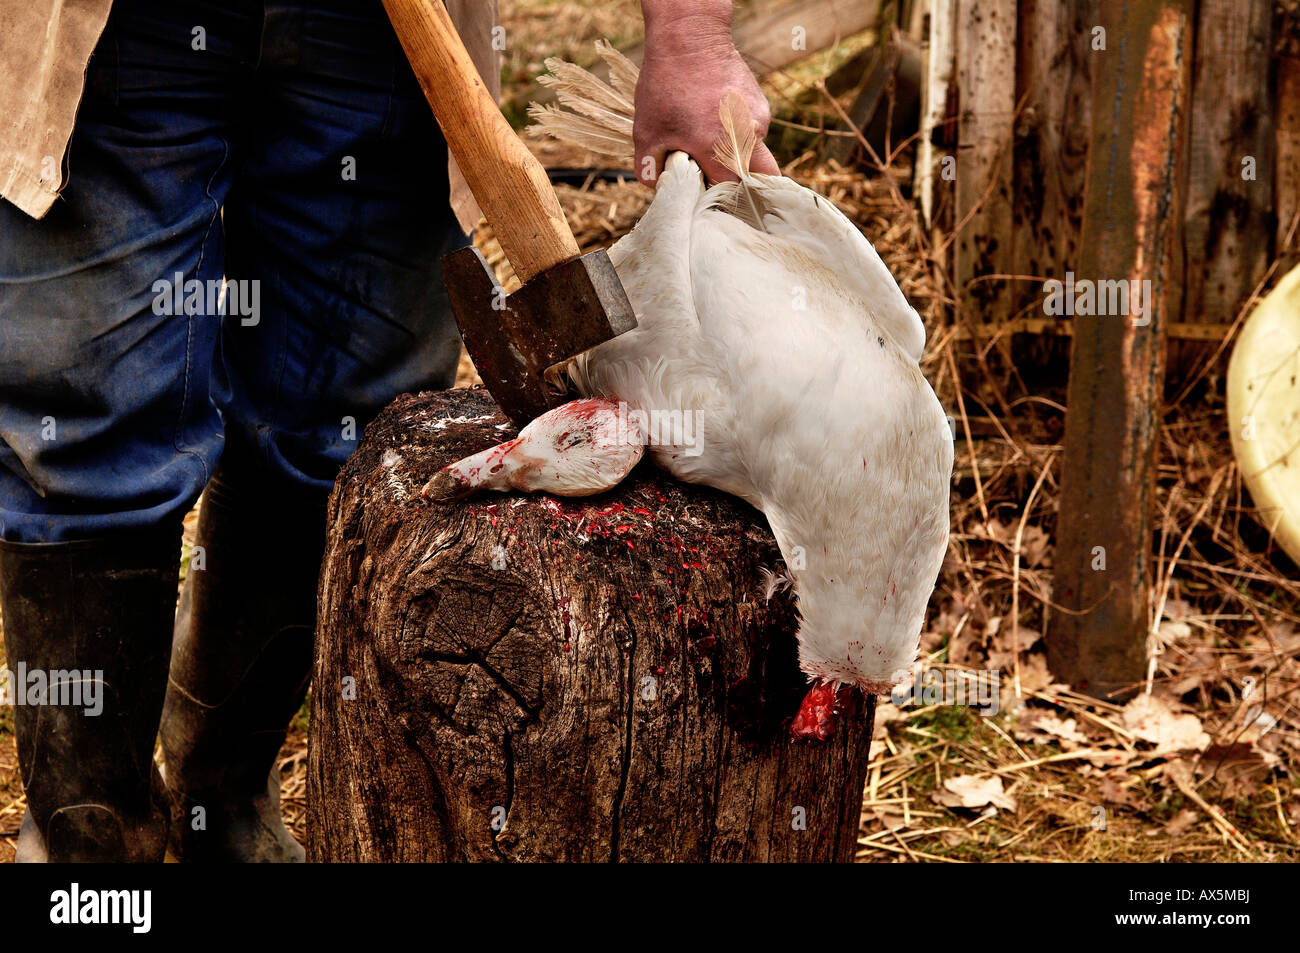 Home slaughtering (duck), farmer holding duck to bleed out on the hack stick, Eckental, Middle Franconia, Bavaria, - Stock Image